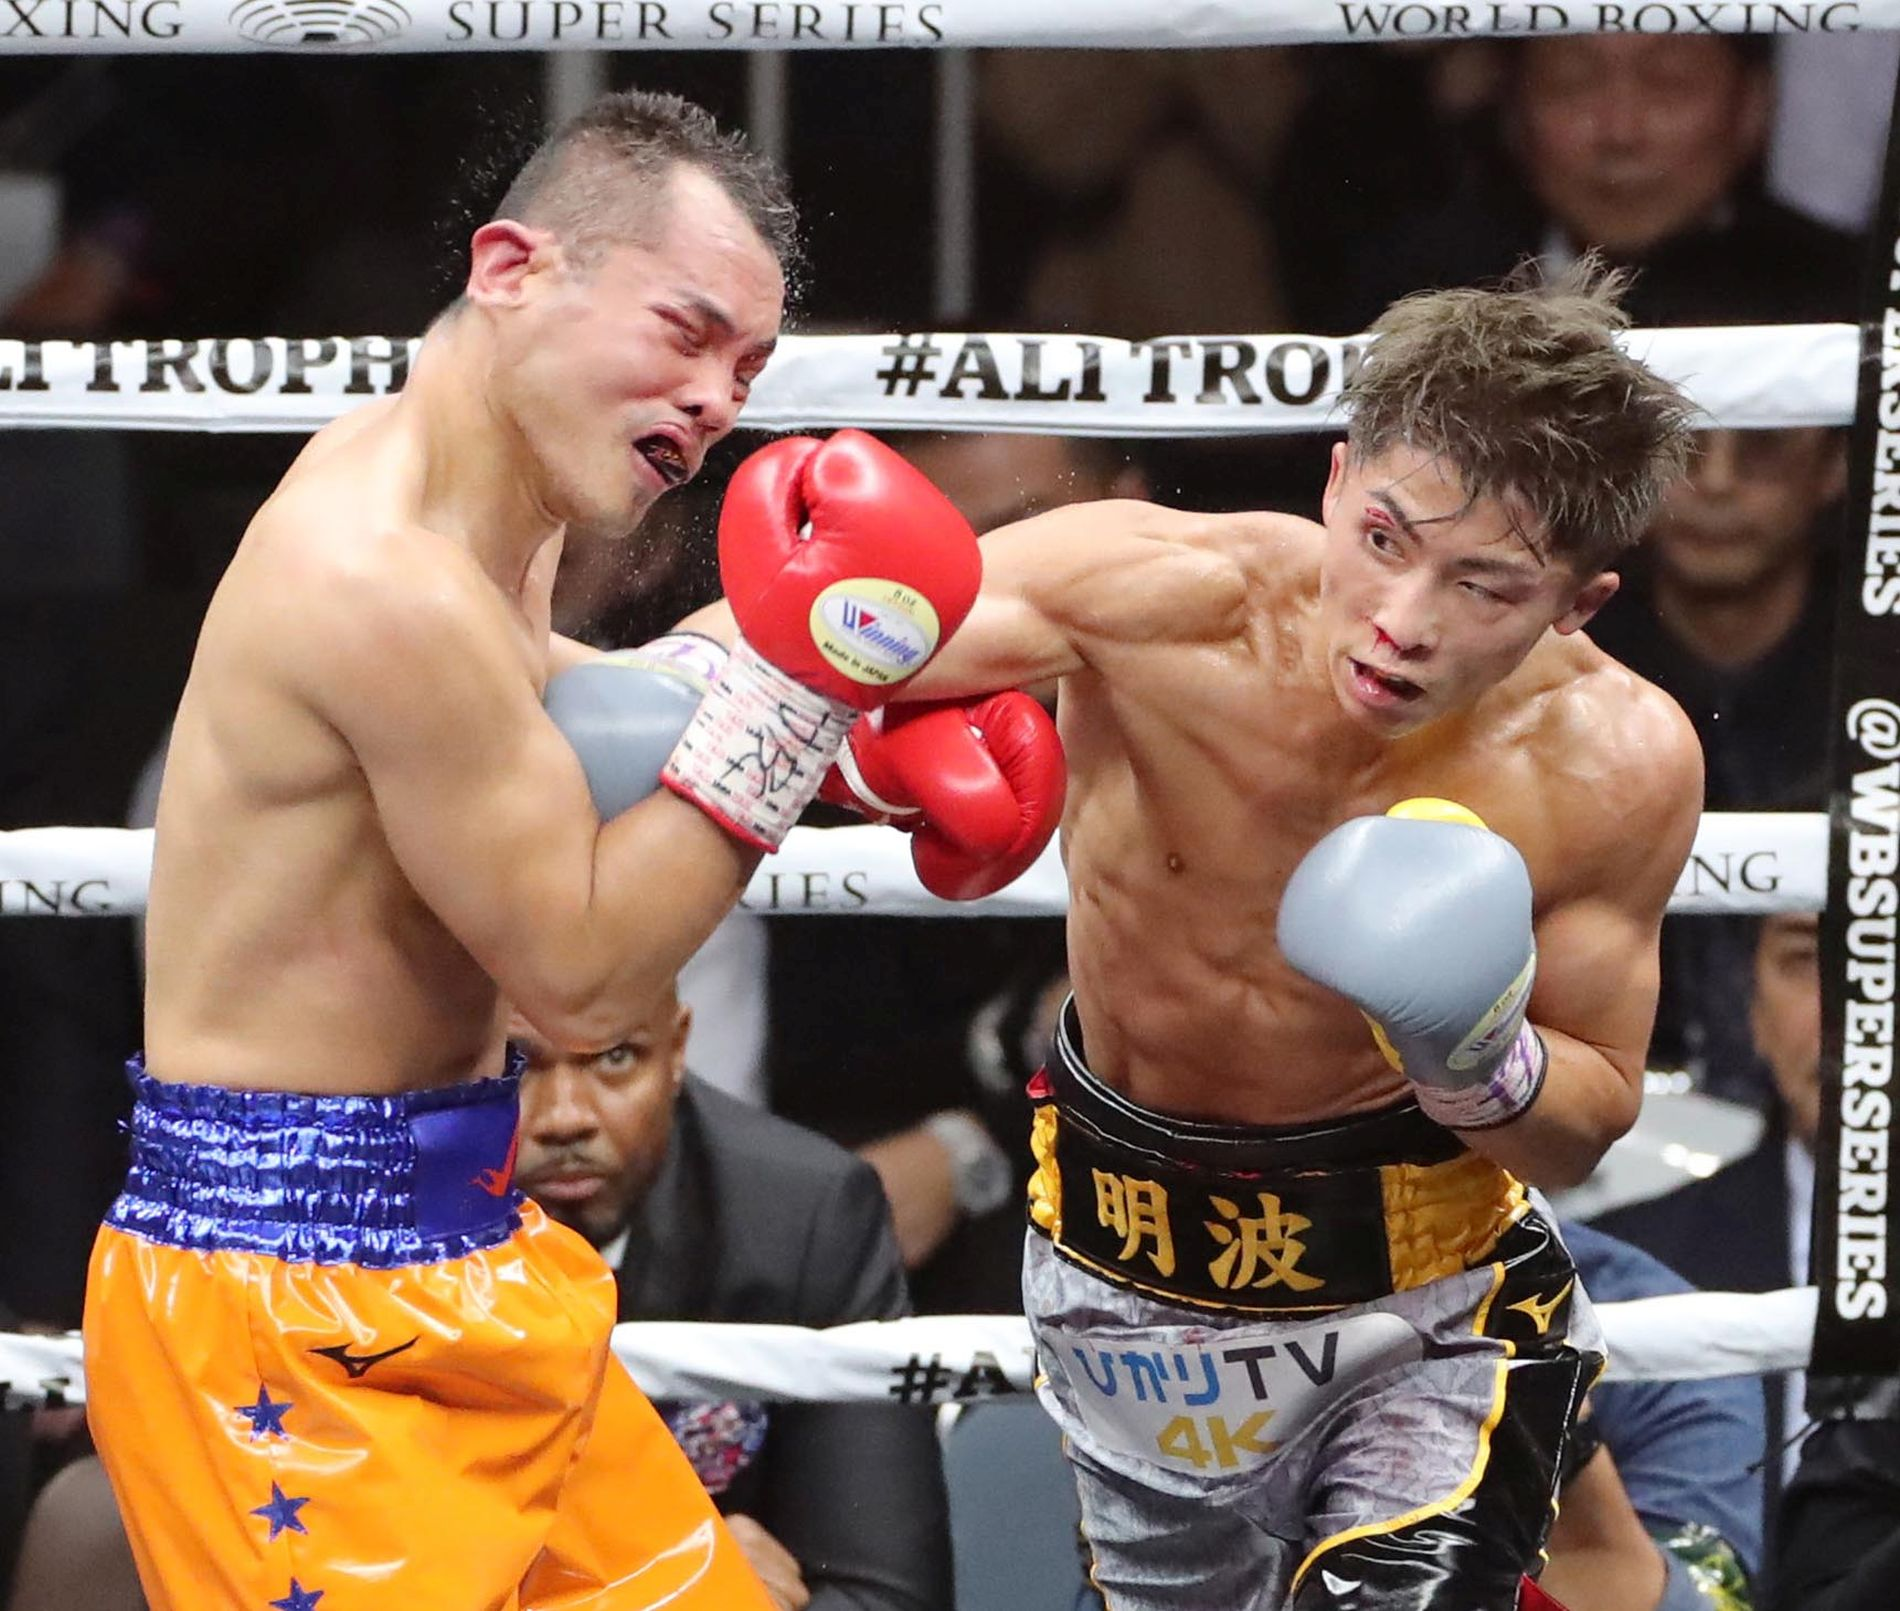 Wbss Match Naoya Inoue Vs Nonito Donaire 005 Japan Forward